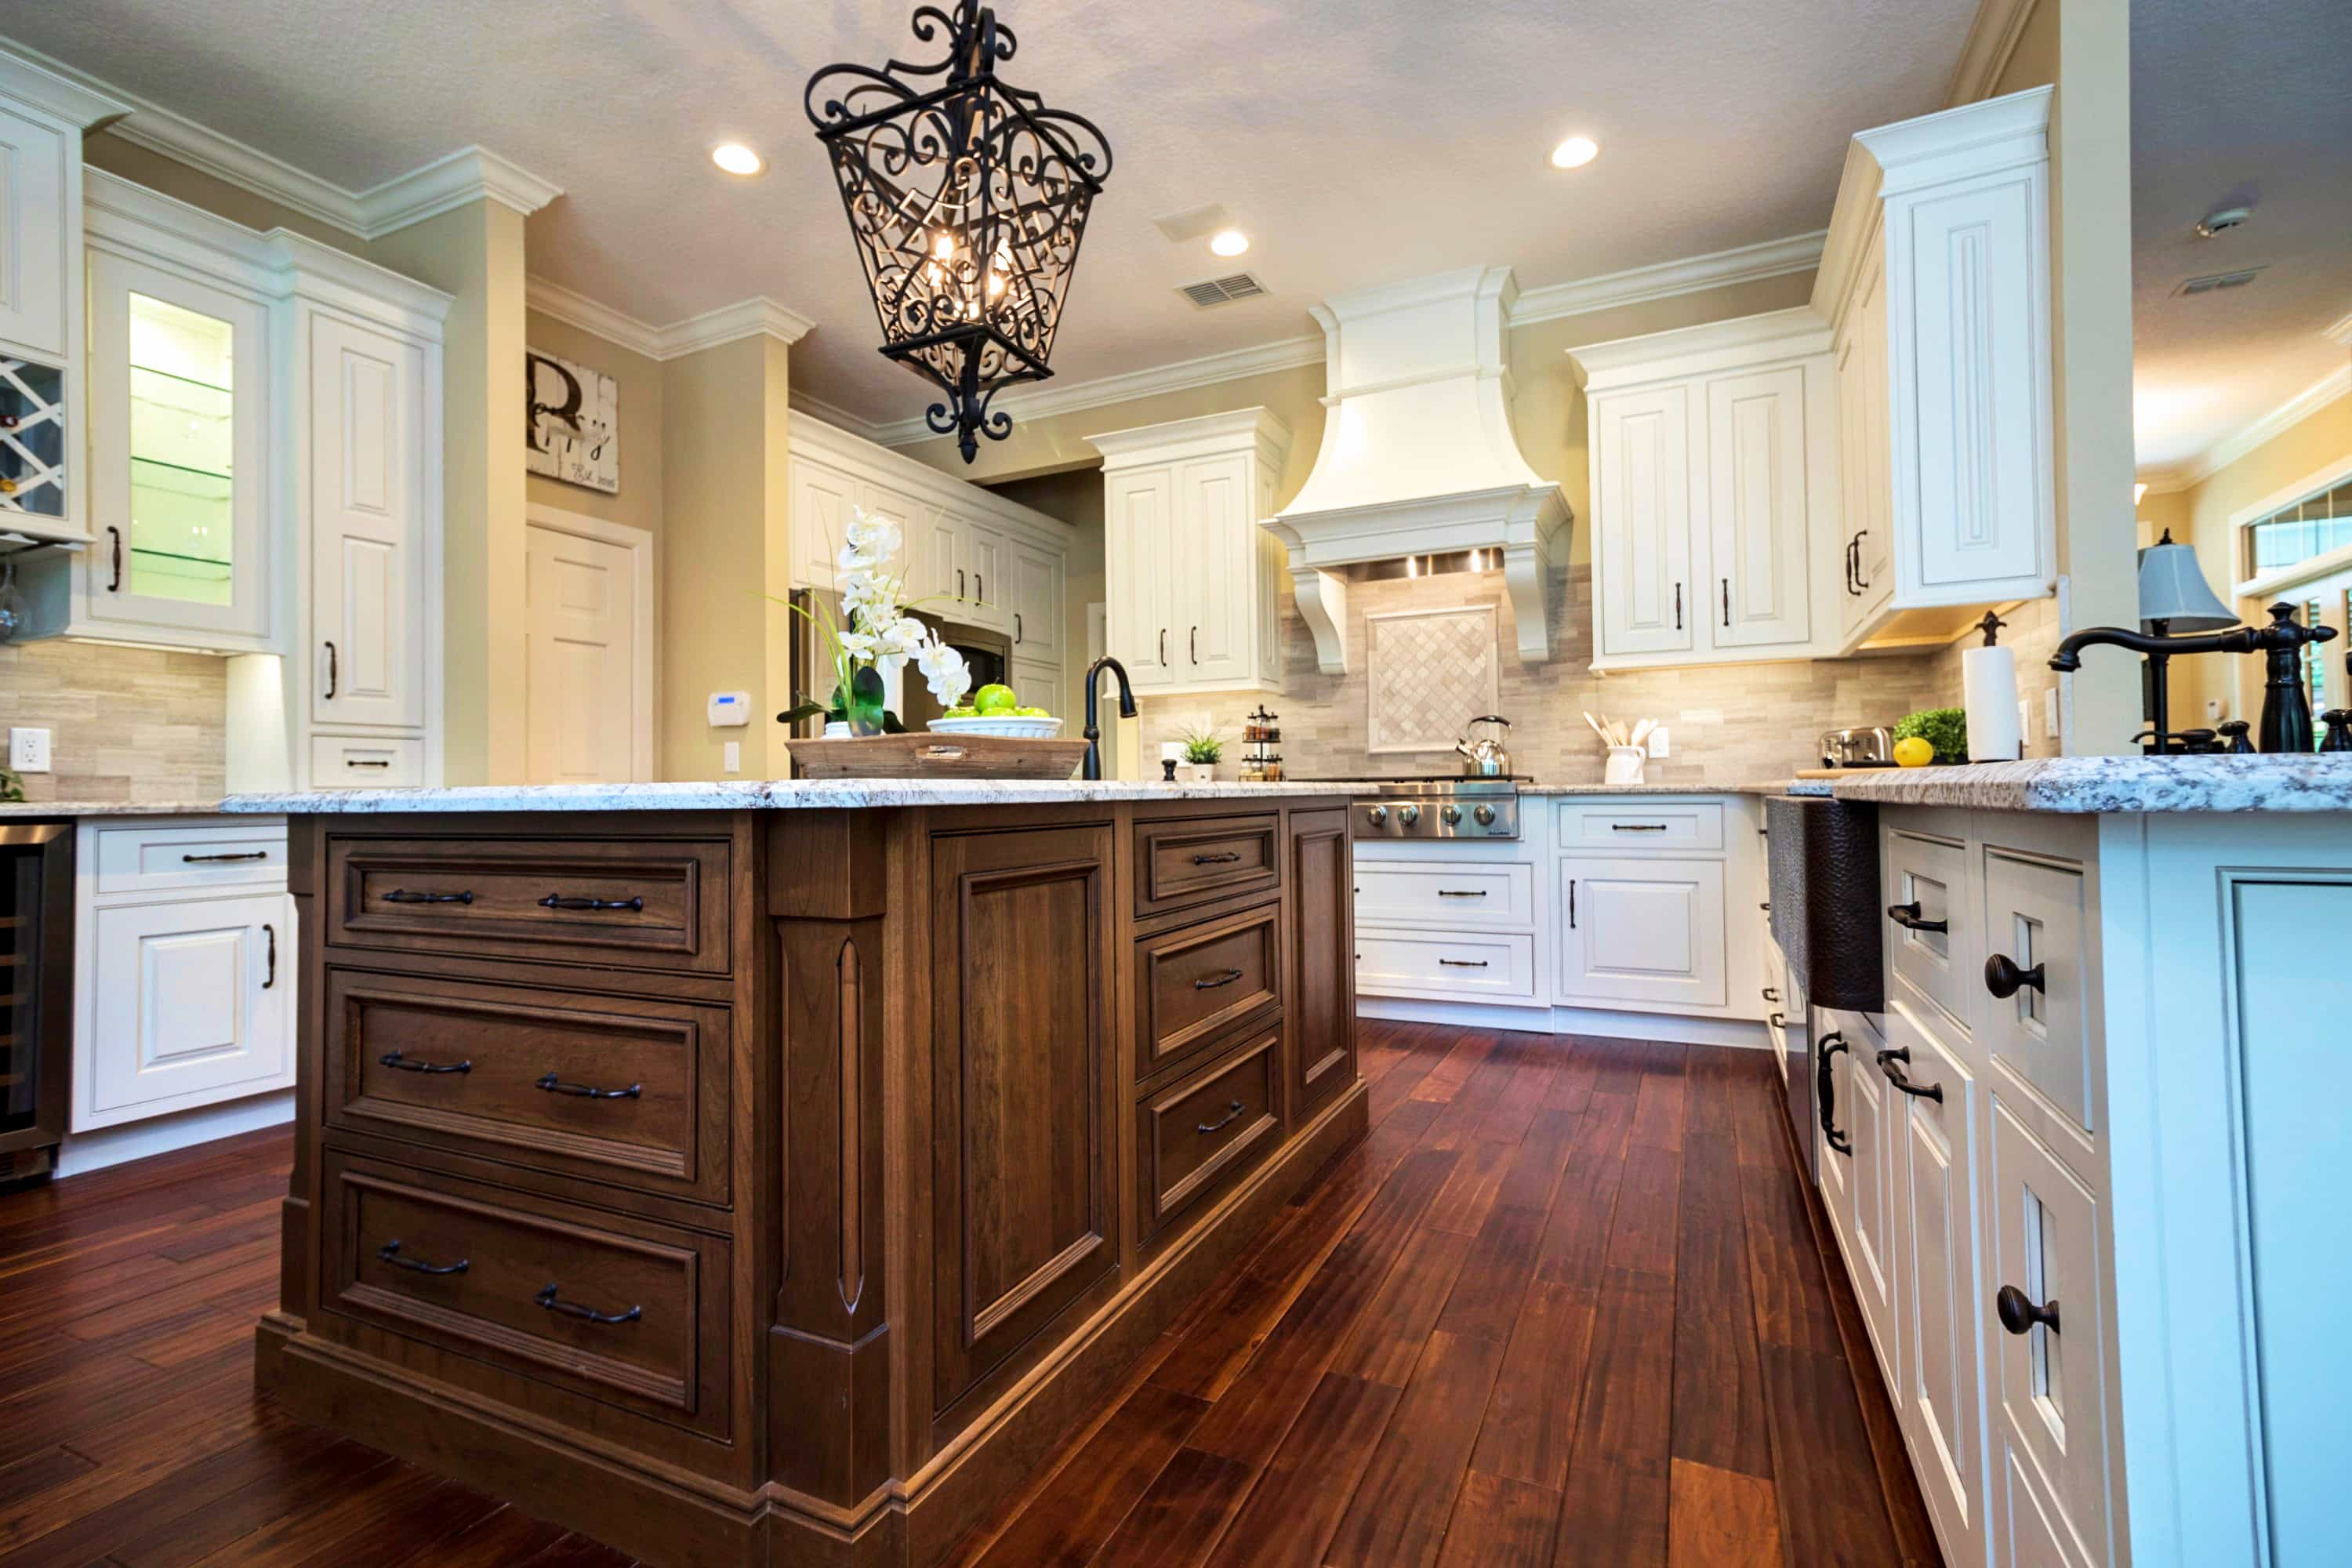 kitchen remodeling orlando equipment rental los angeles and bathroom services in kbf